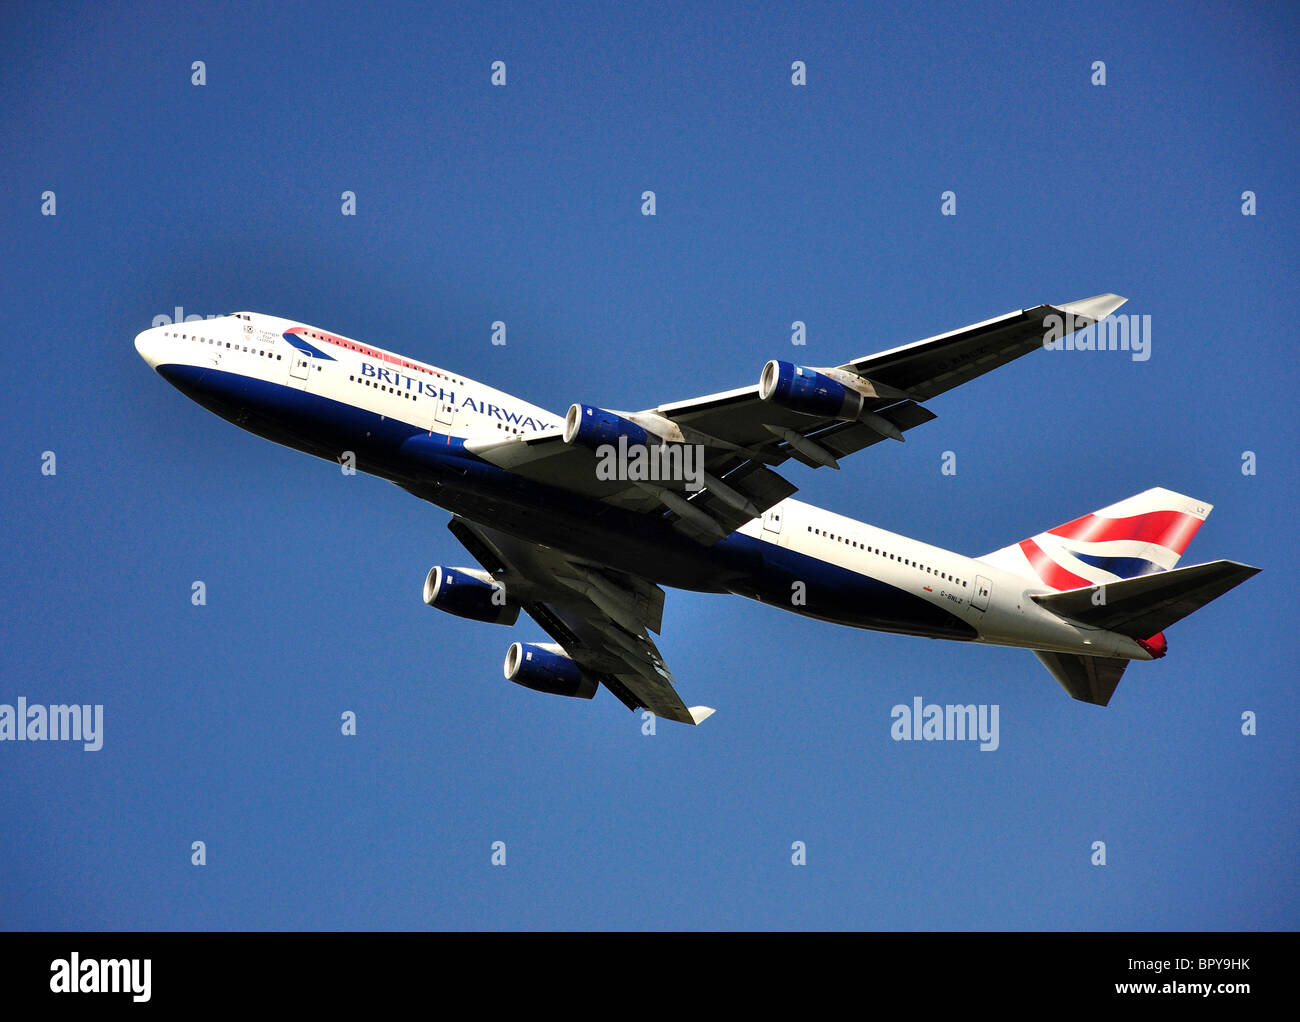 British Airways Boeing 747-400 aircraft taking off from Heathrow Airport, Greater London, England, United Kingdom - Stock Image